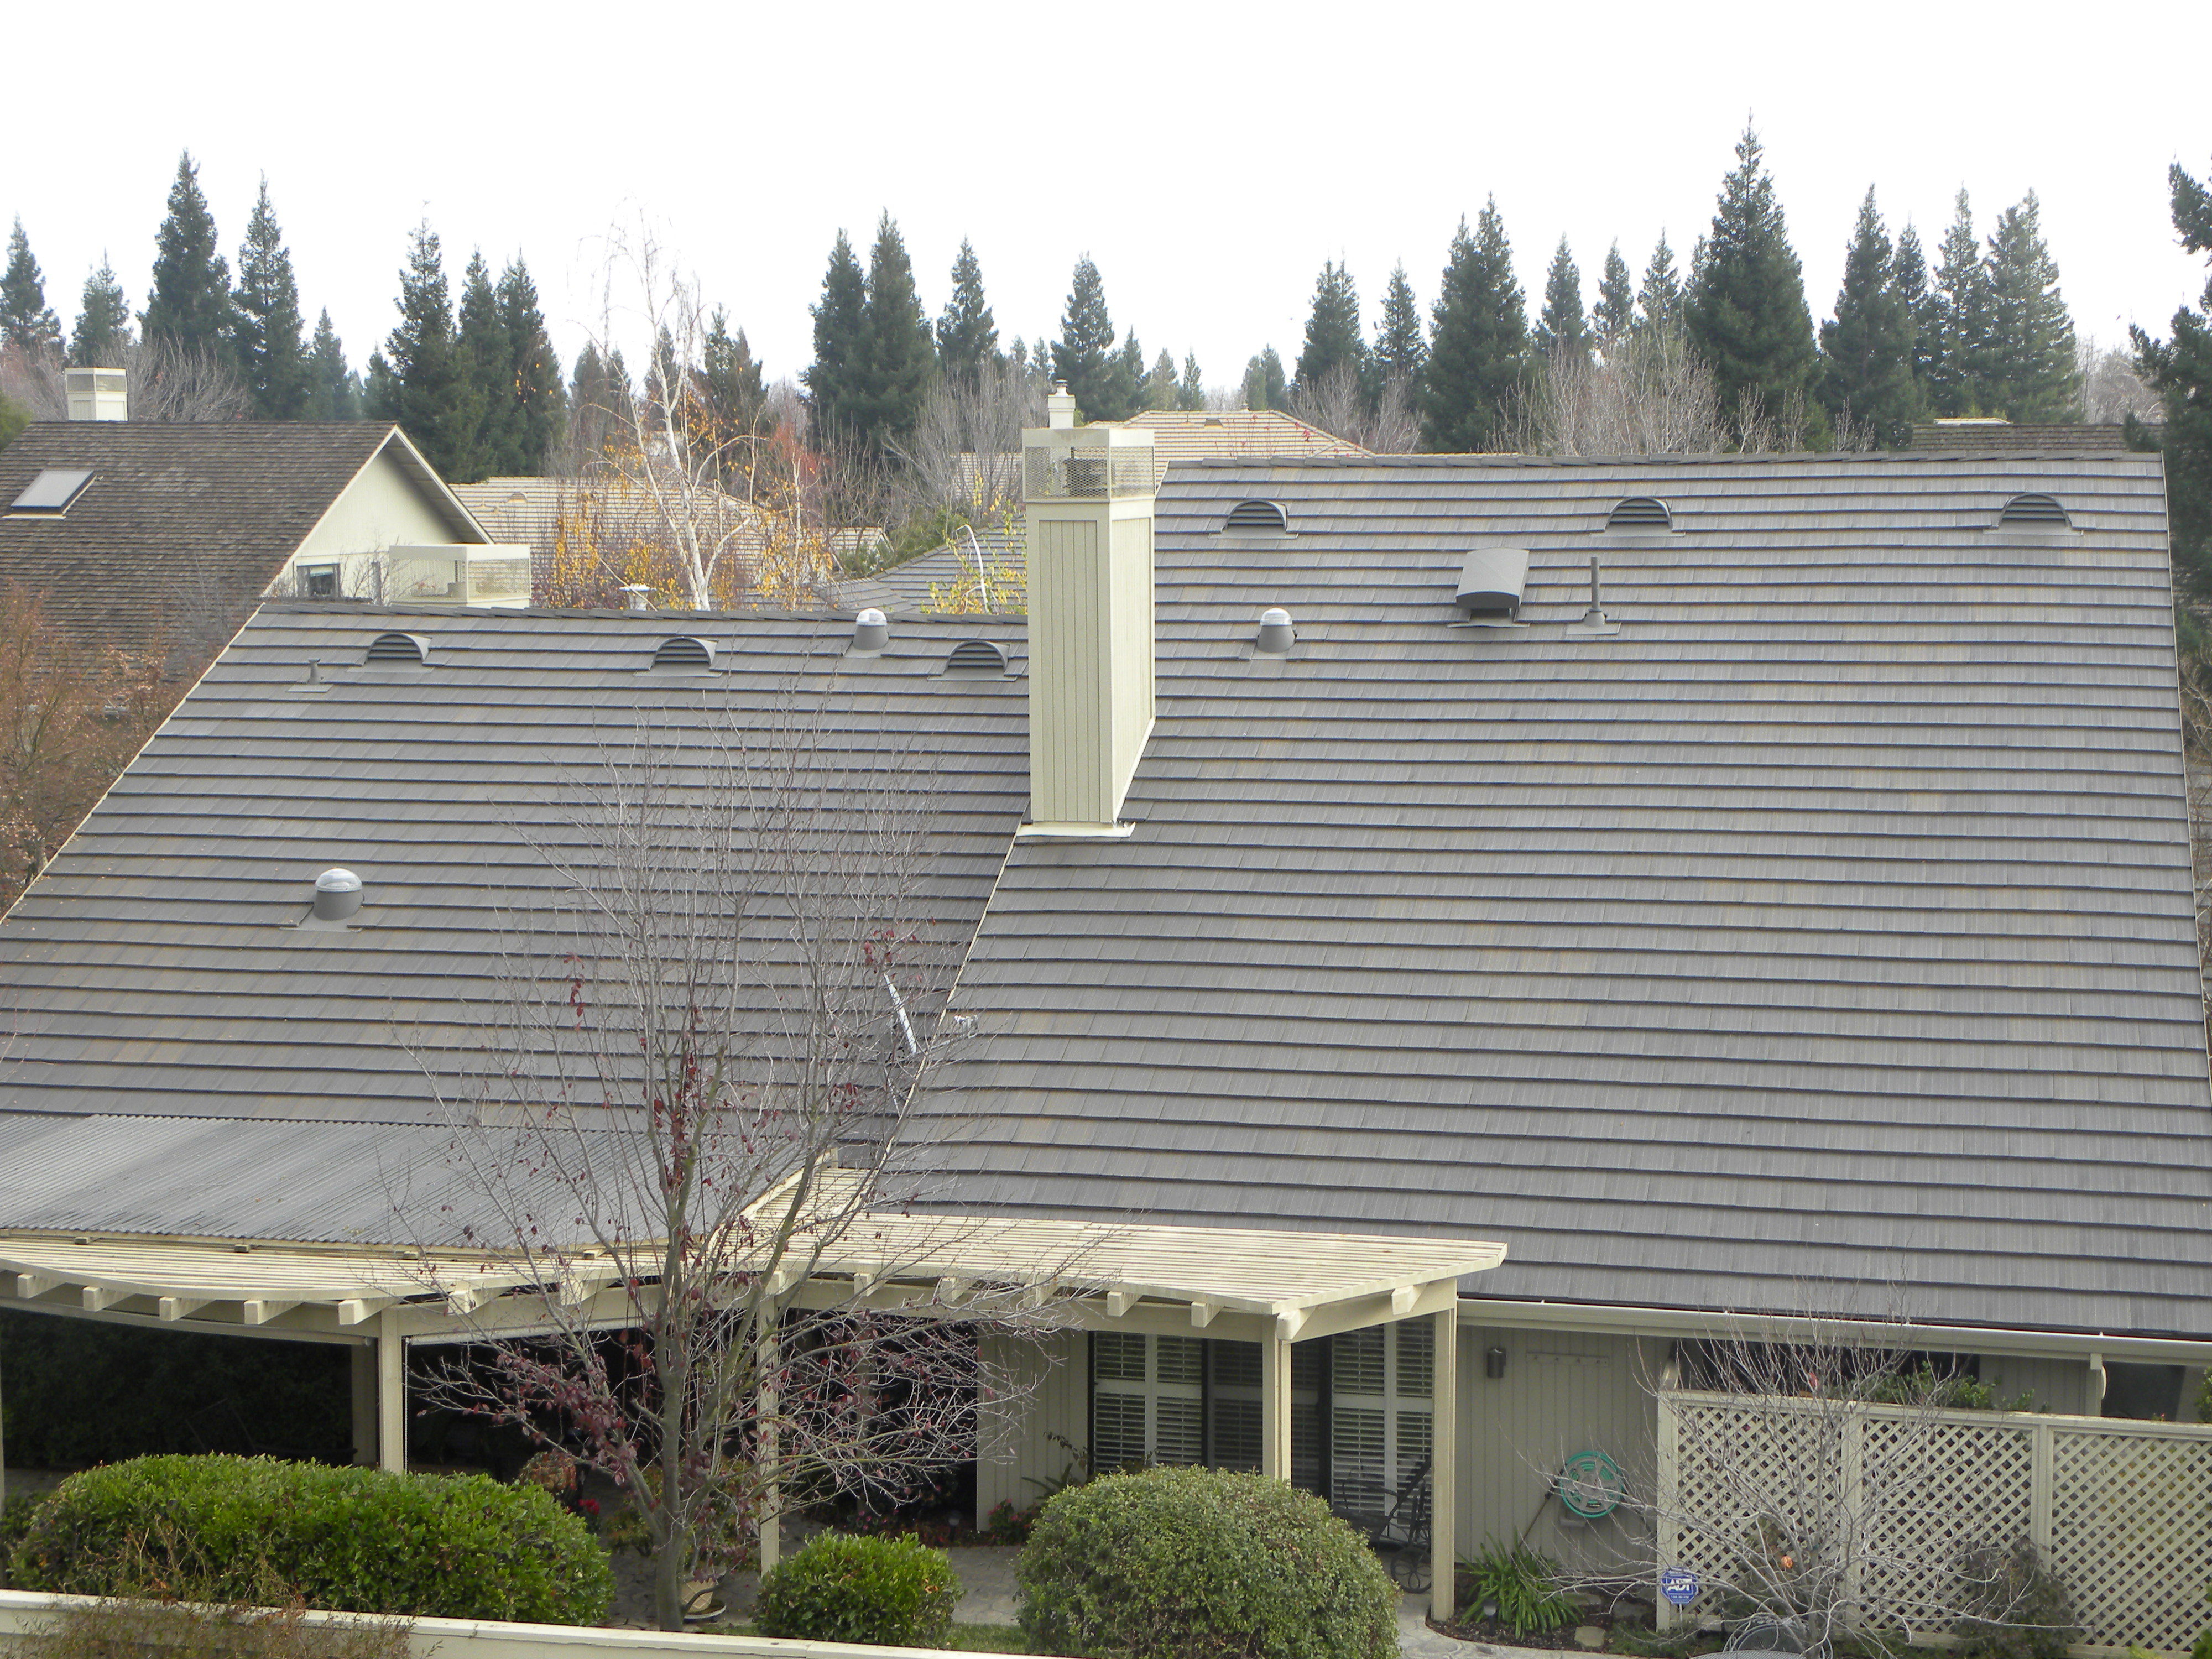 Large Half Round Dormer Vents Installed On The Back Of A Roof In Gold River,